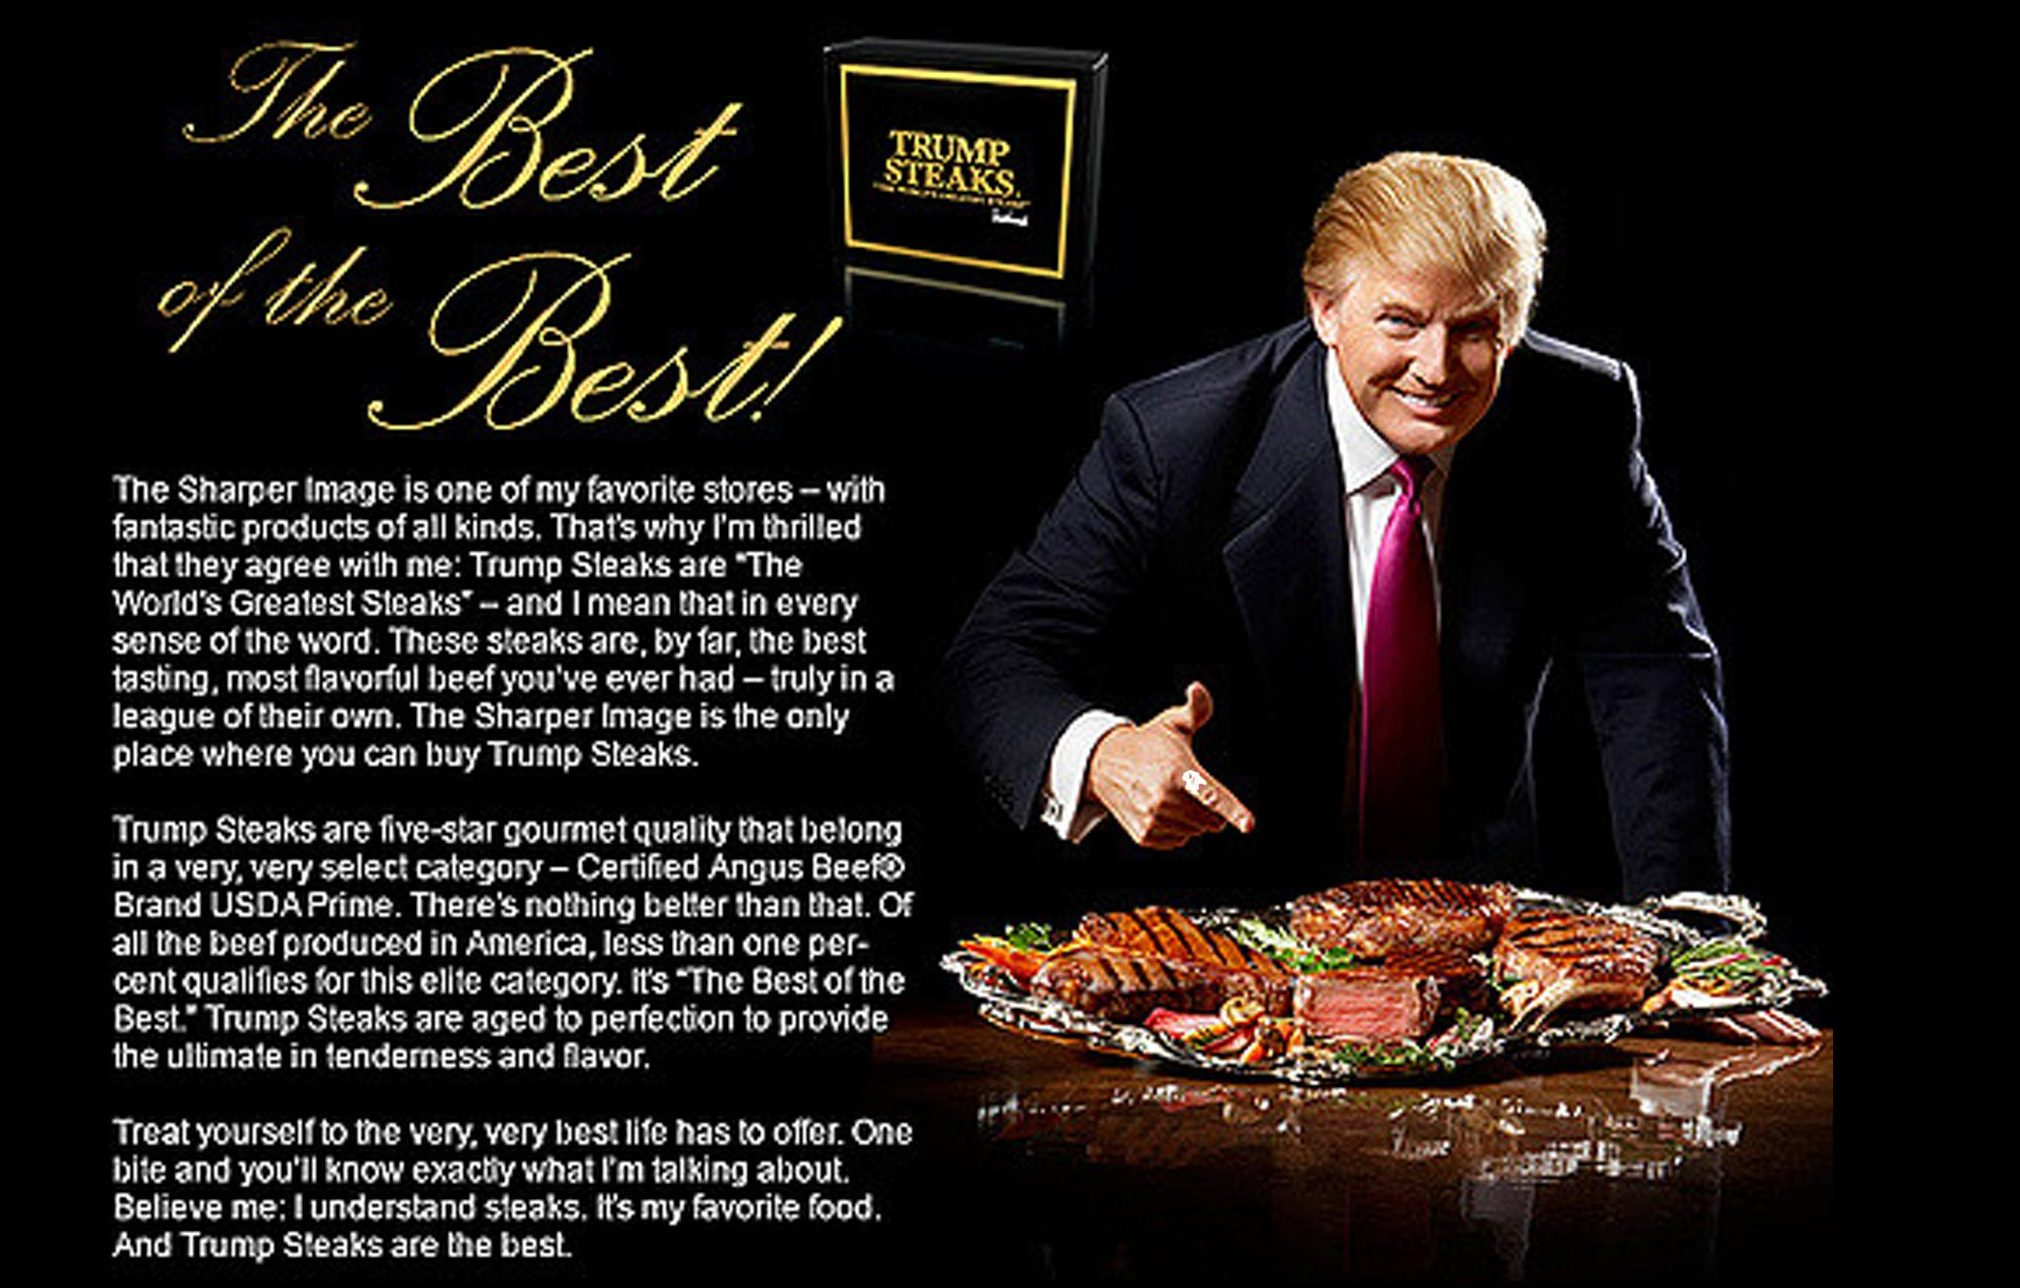 Donald Trump S Eating Habits And What He Gets Ridiculed